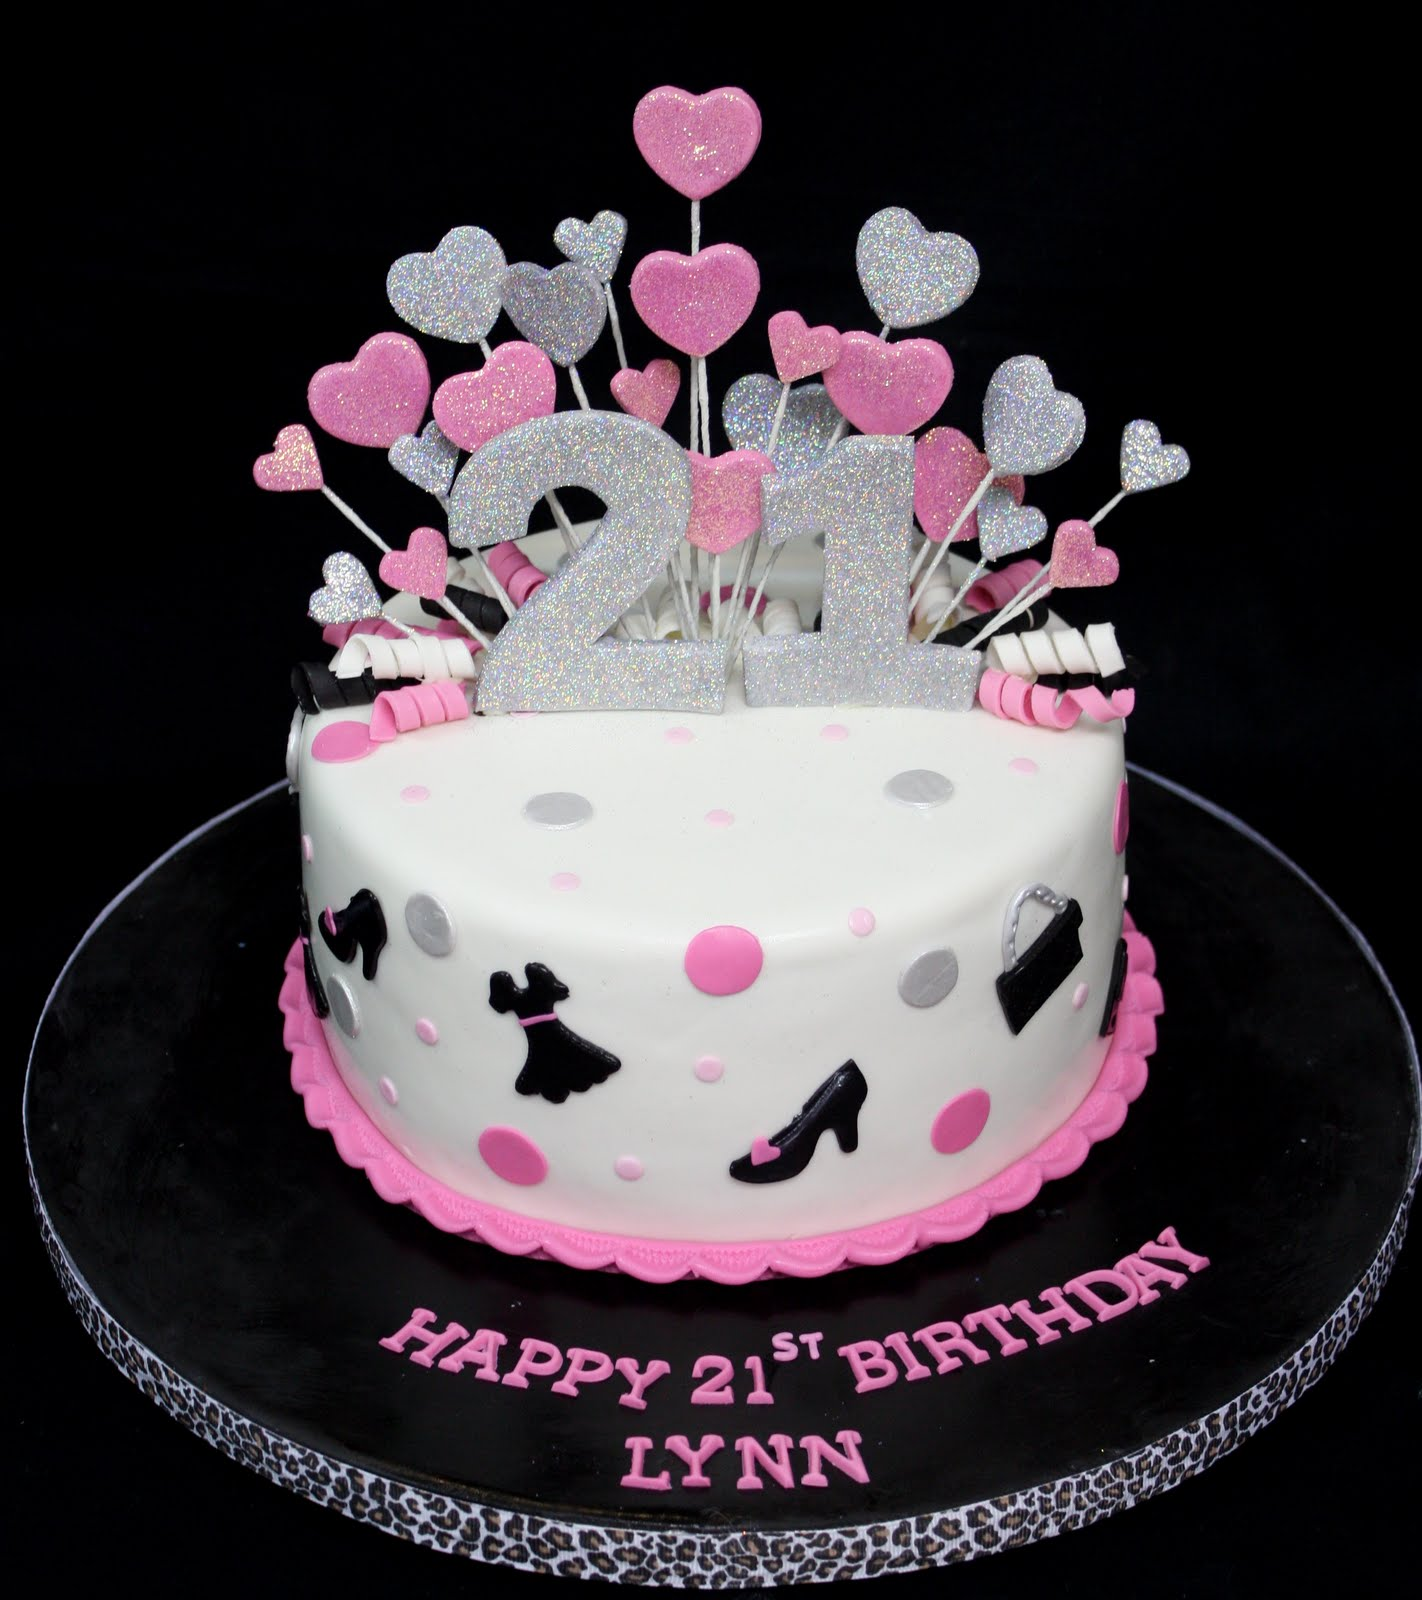 Magnificent 12 21 Birthday Cakes Cute Photo 21St Birthday Cake Idea Cute Funny Birthday Cards Online Benoljebrpdamsfinfo